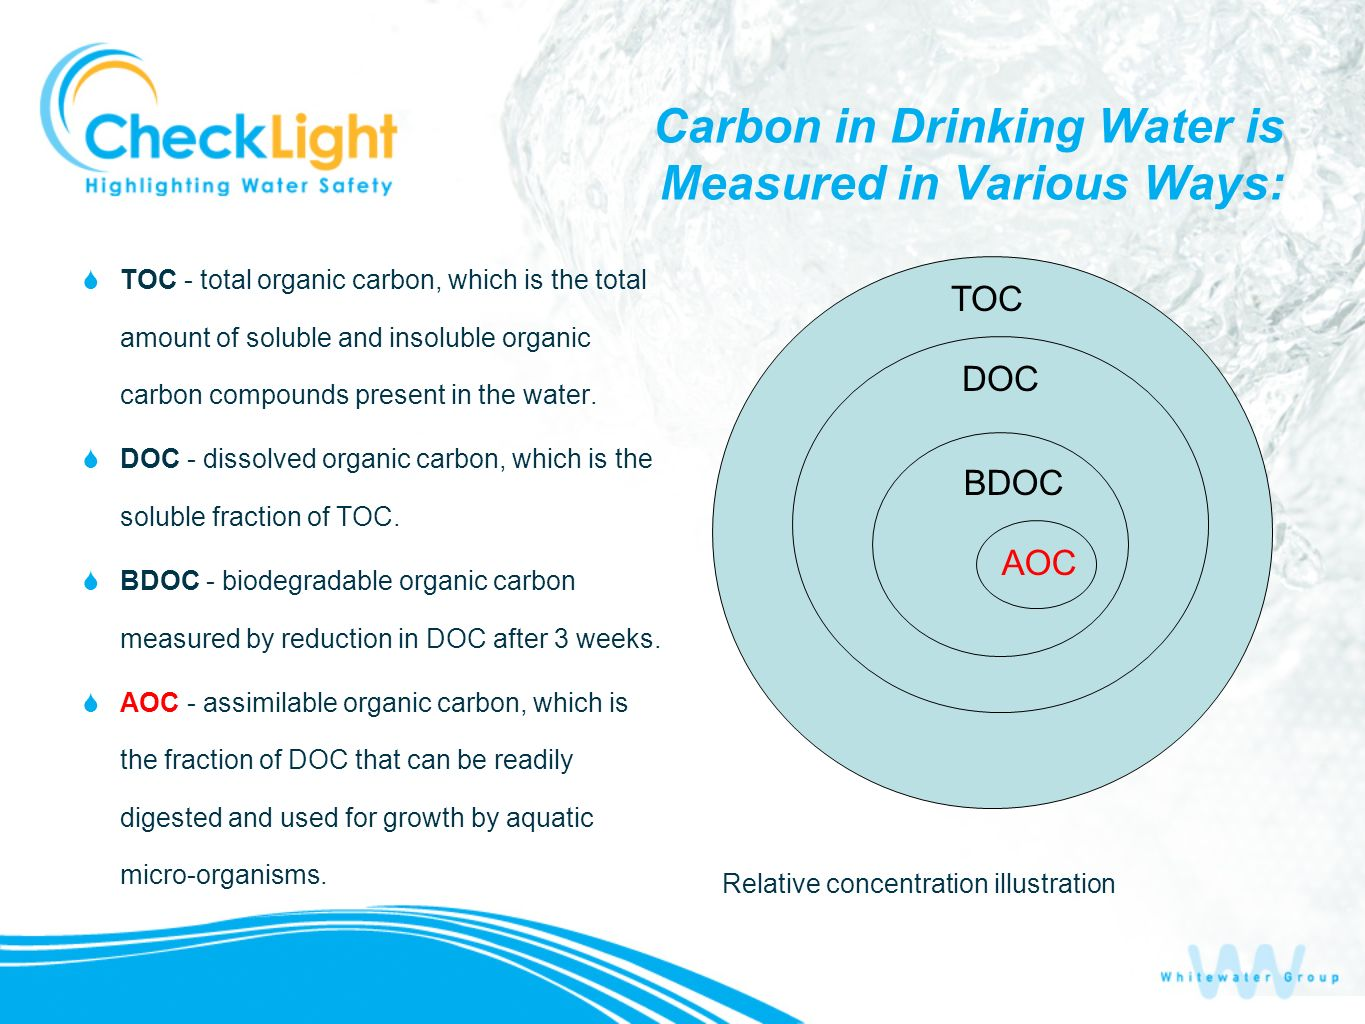 Carbon in Drinking Water is Measured in Various Ways: TOC - total organic carbon, which is the total amount of soluble and insoluble organic carbon co